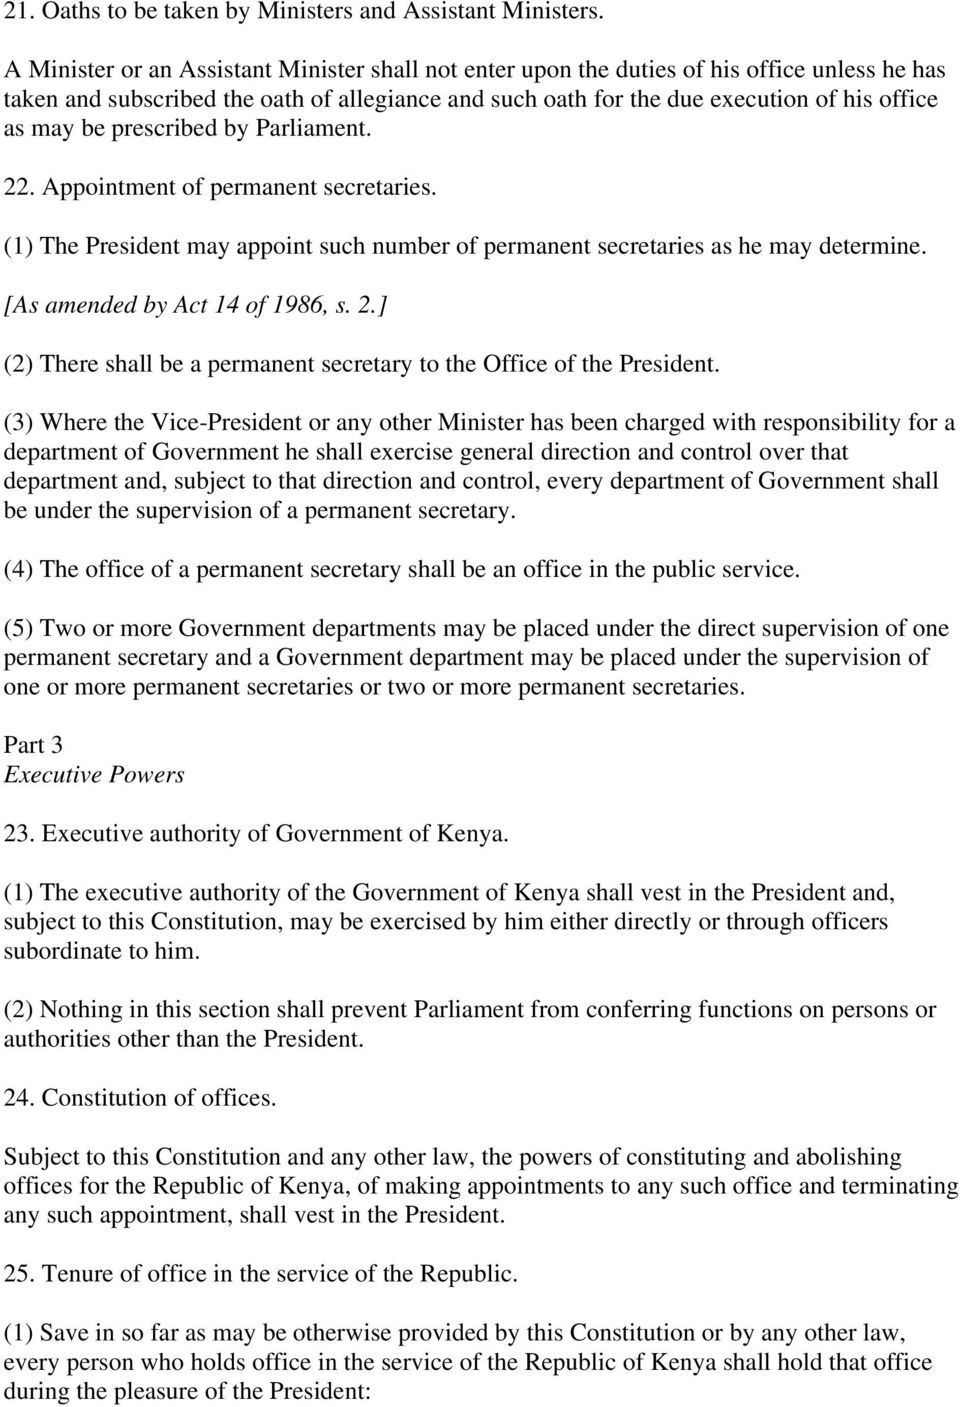 prescribed by Parliament. 22. Appointment of permanent secretaries. (1) The President may appoint such number of permanent secretaries as he may determine. [As amended by Act 14 of 1986, s. 2.] (2) There shall be a permanent secretary to the Office of the President.